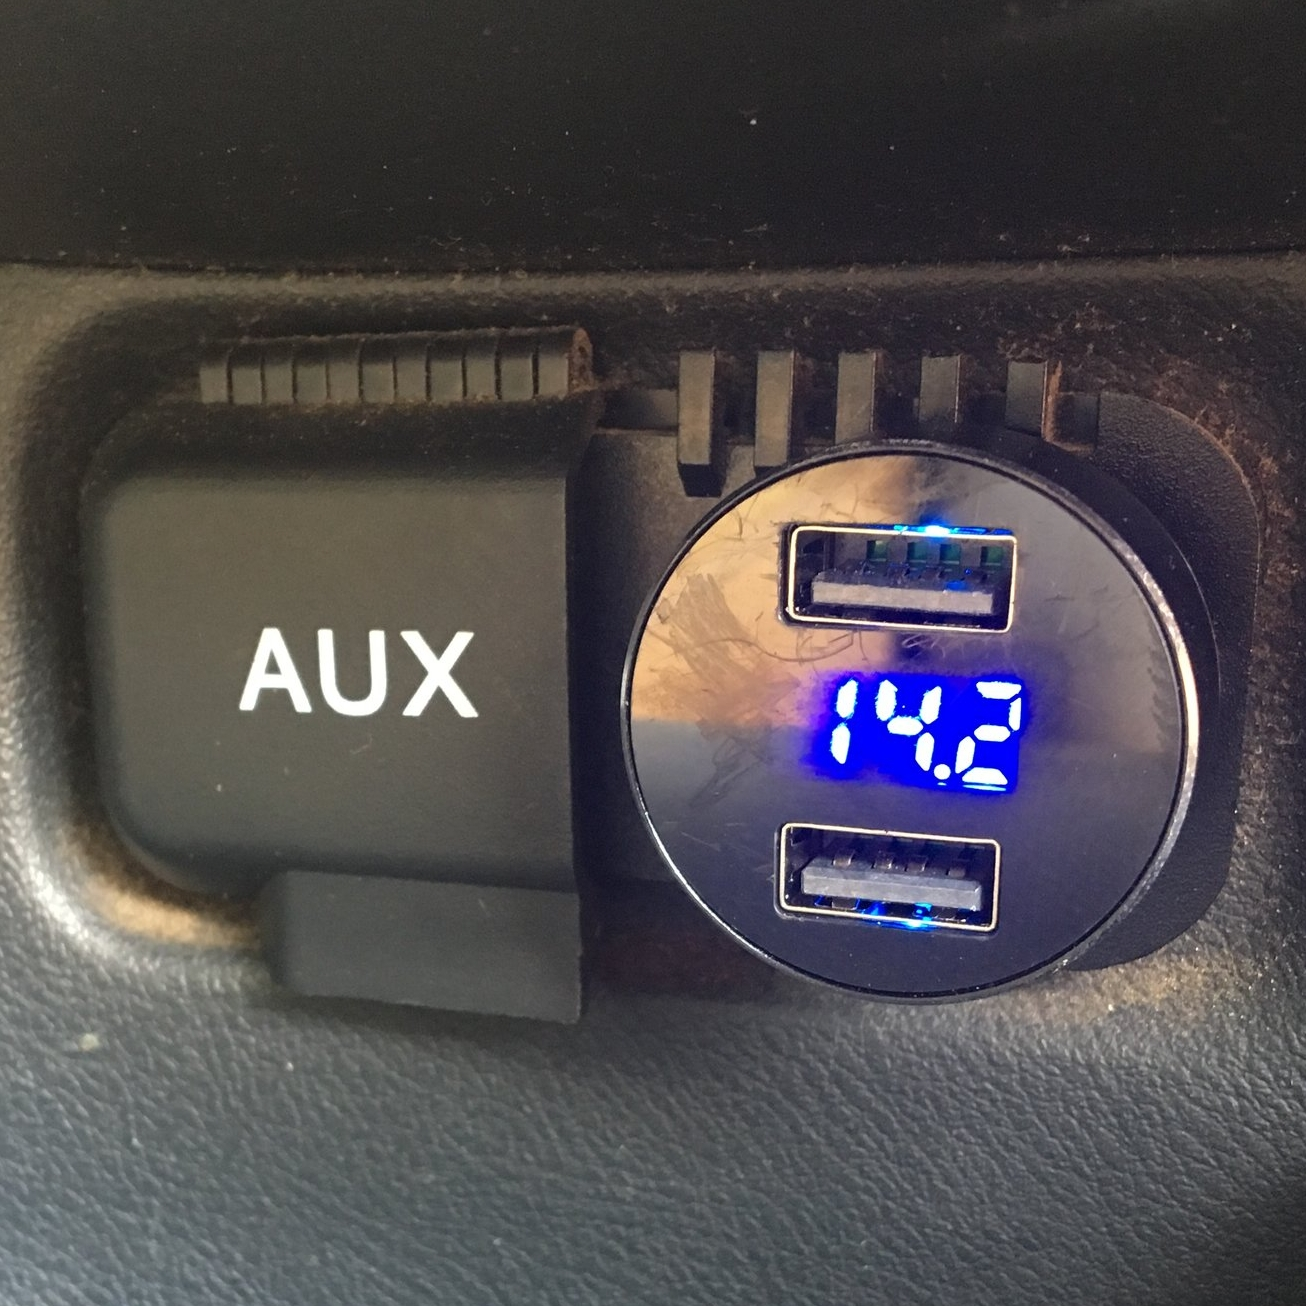 USB PORT  This push to install 12V USB port has a vehicle battery gauge & two USB ports.